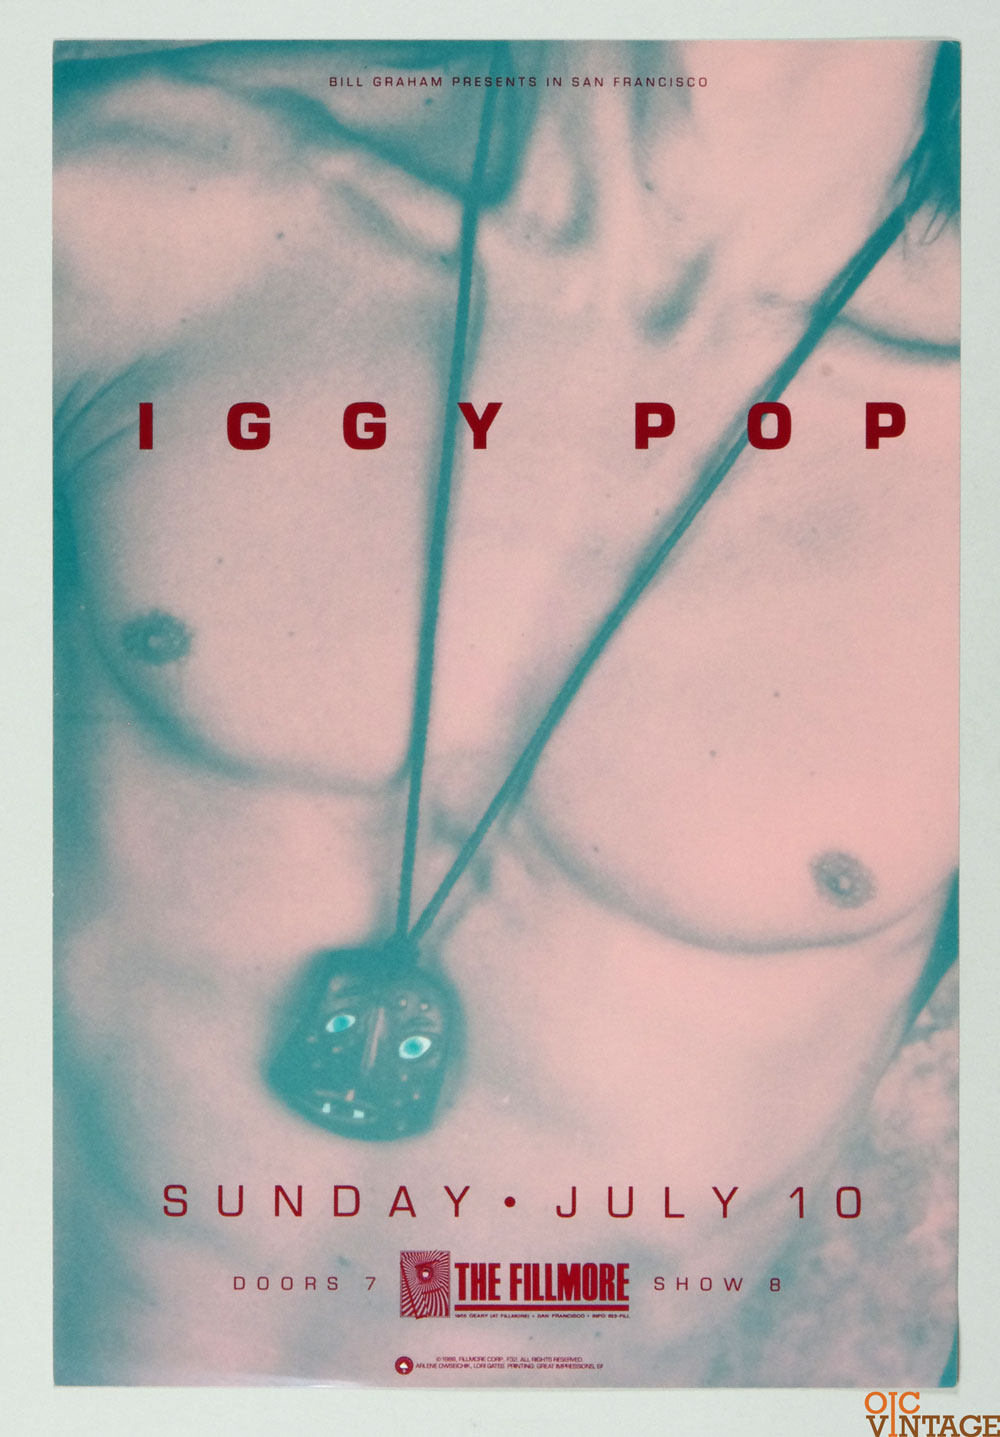 Iggy Pop Poster 1988 Jul 10 New Fillmore